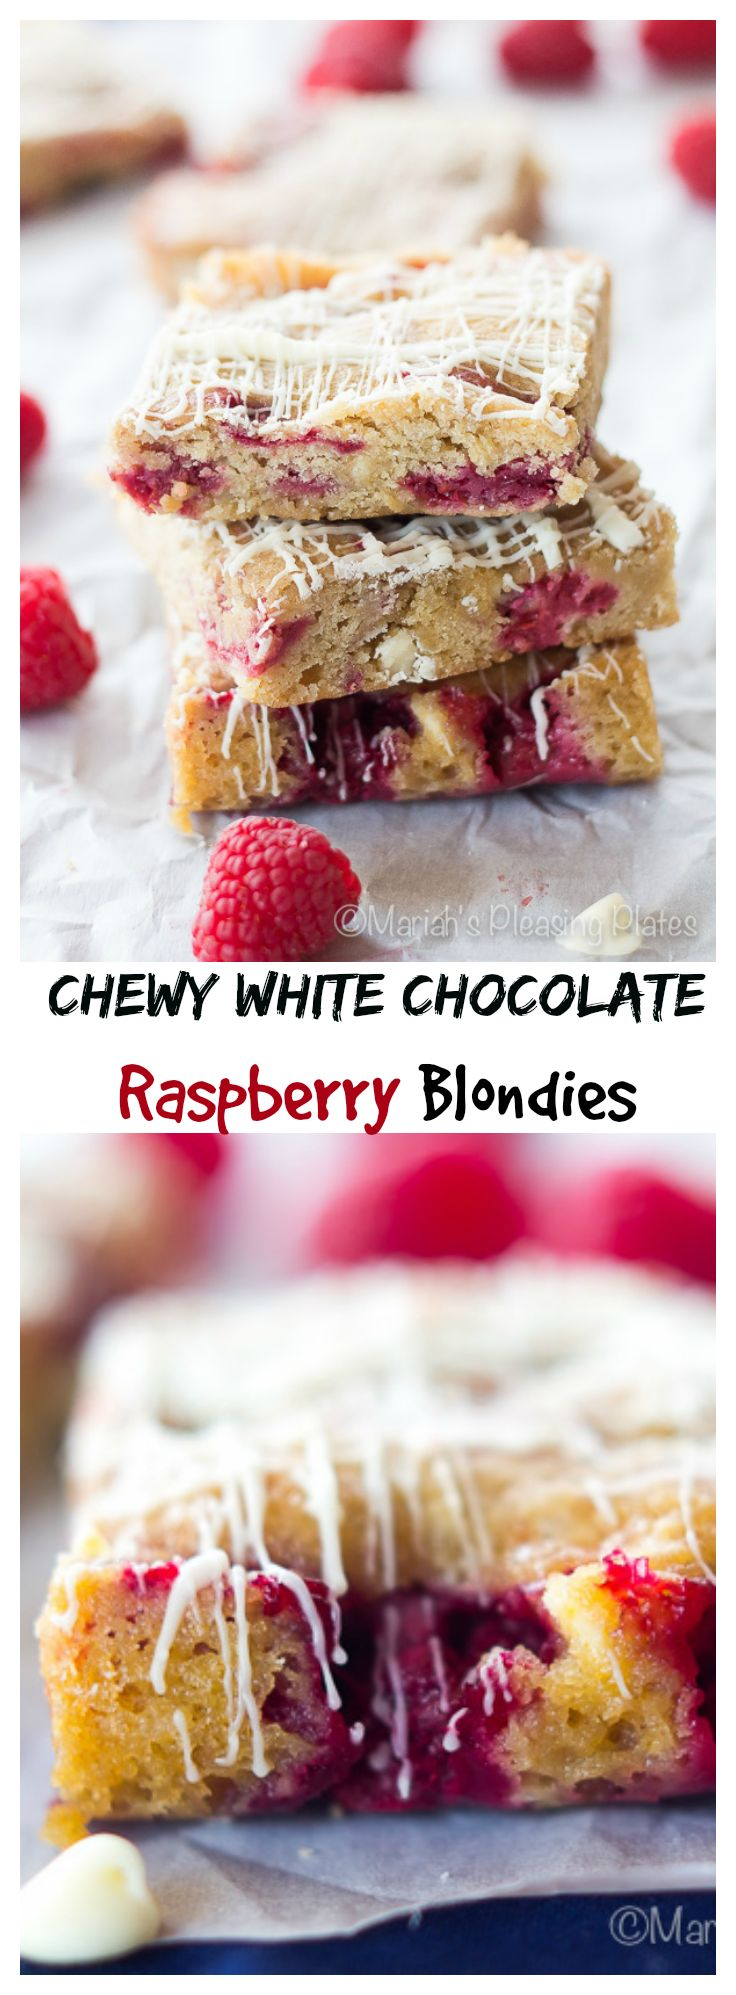 nike discount store portland oregon Decadence at its finest  these White Chocolate Raspberry Blondies are sure to impress anyone  The perfect chewy texture  combined with juicy  tart raspberries make these treats unforgettable